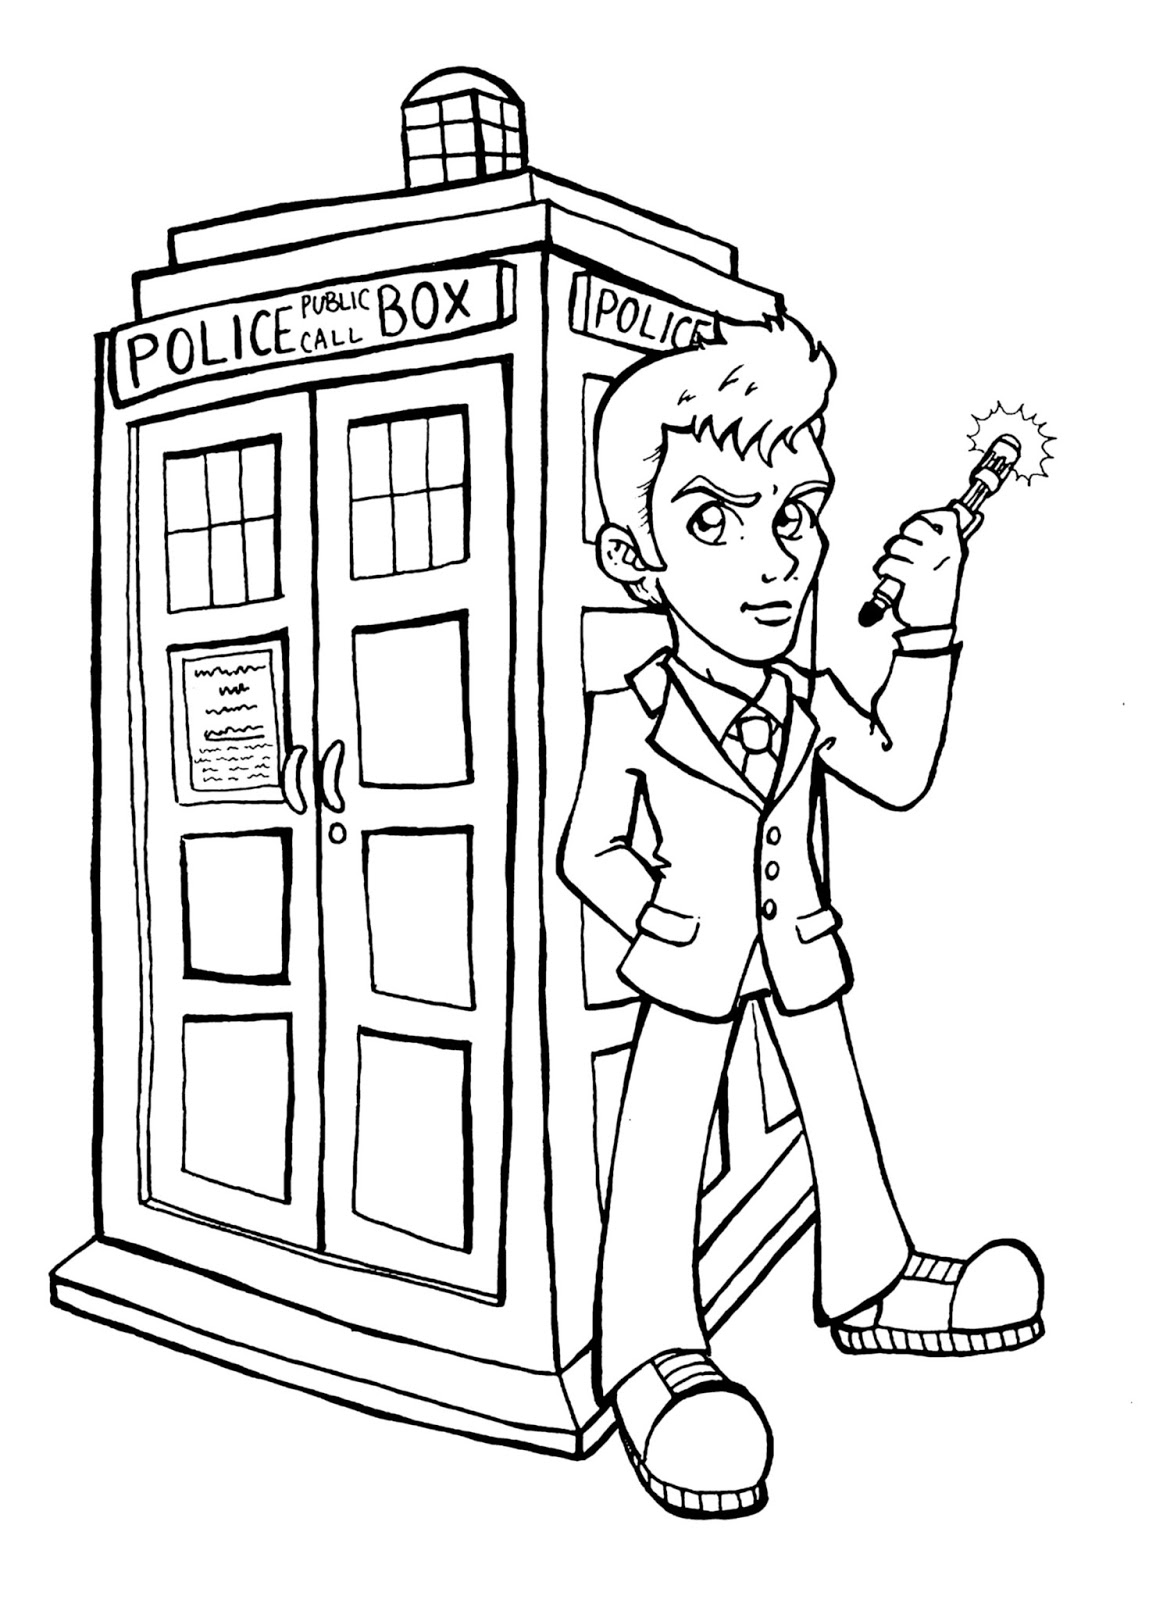 Doctor Who Tardis Coloring Pages At Getdrawings Com Free